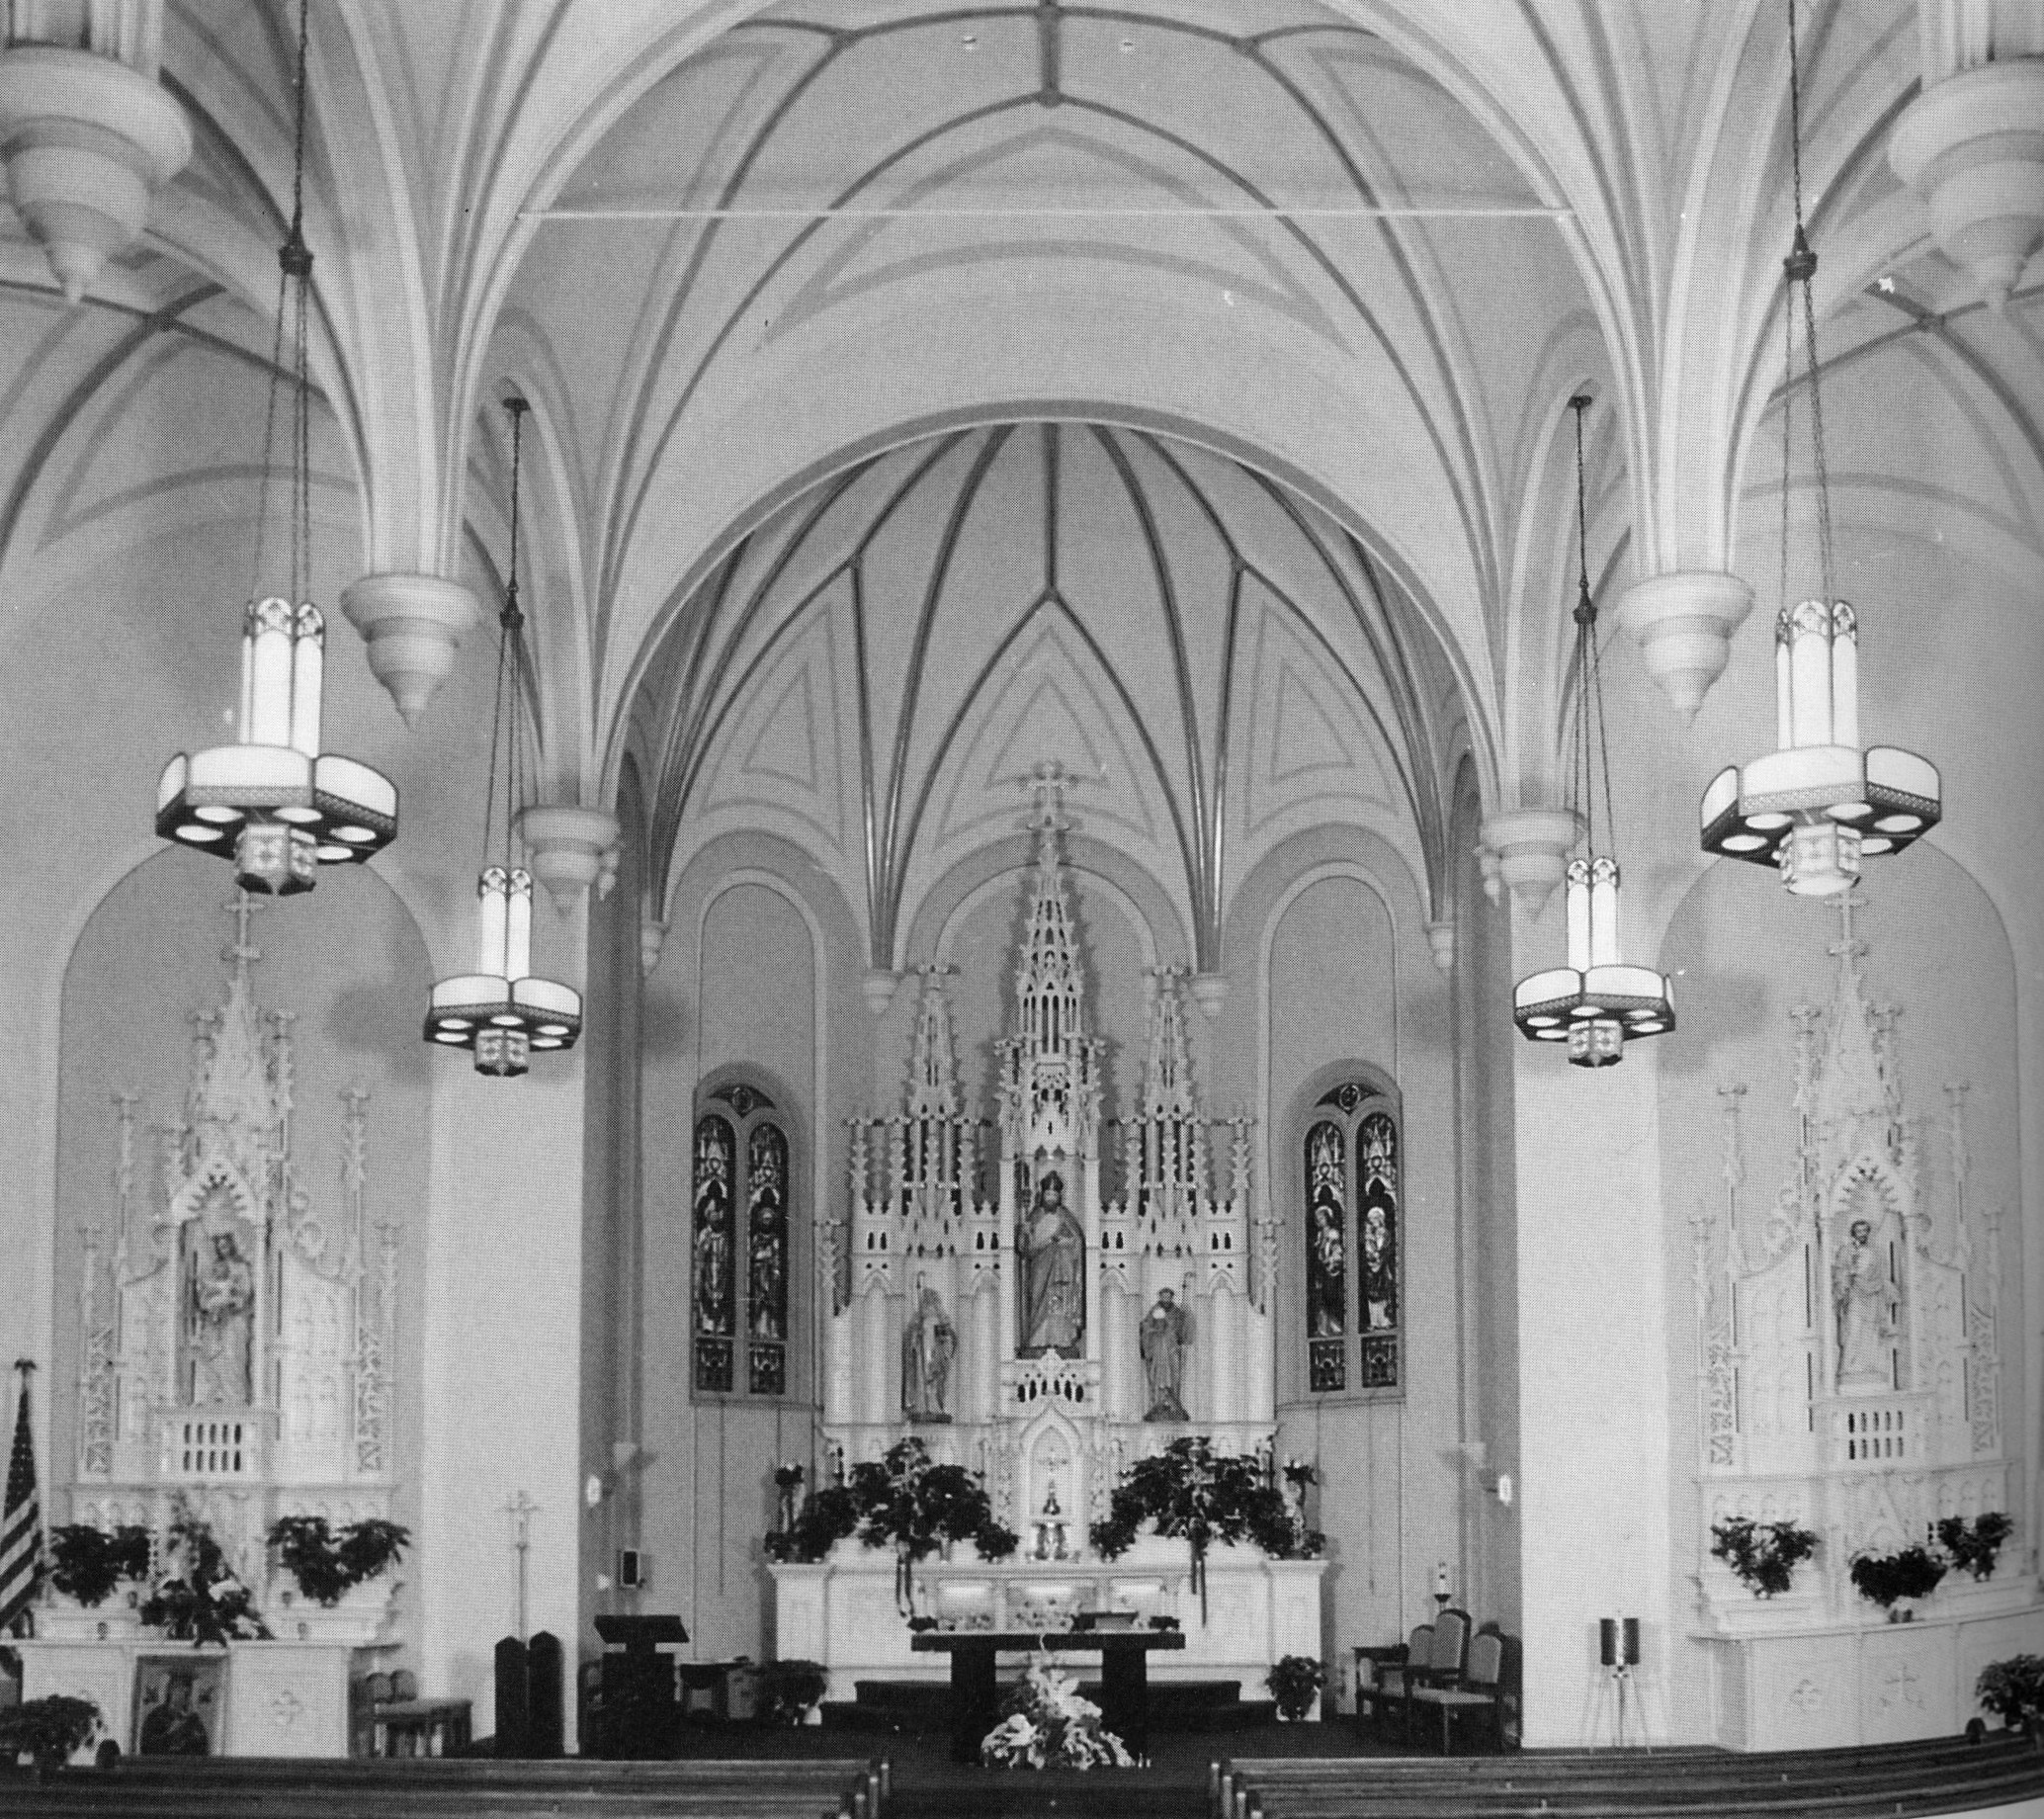 Interior of St. Patrick's Church.